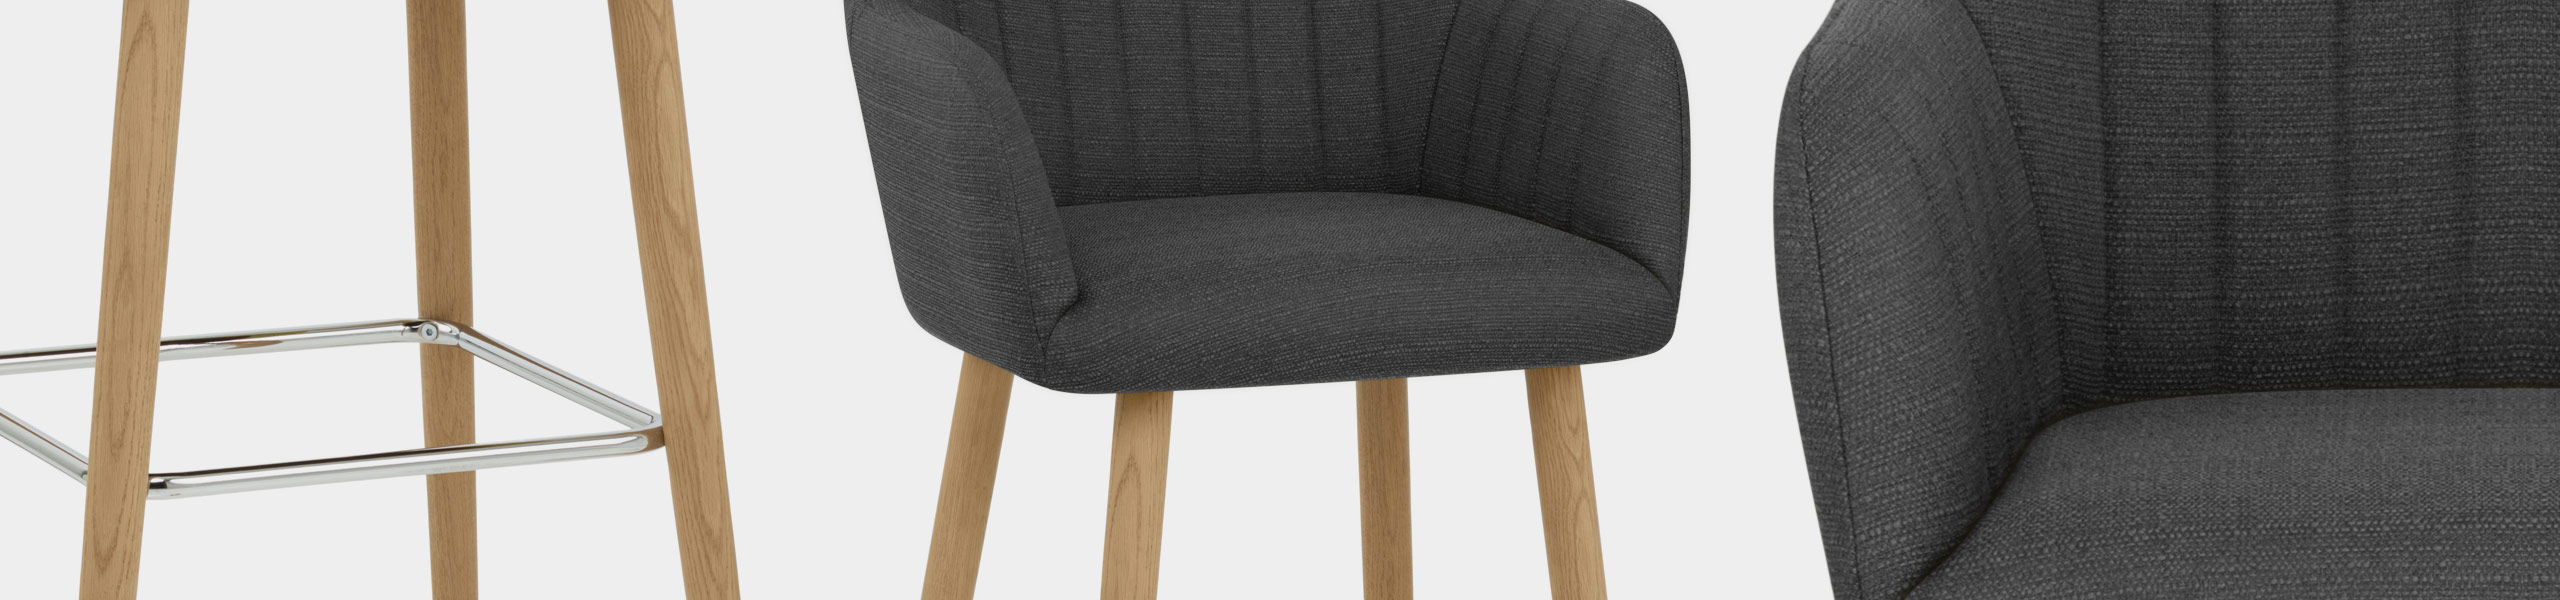 Rio Wooden Stool Charcoal Fabric Video Banner